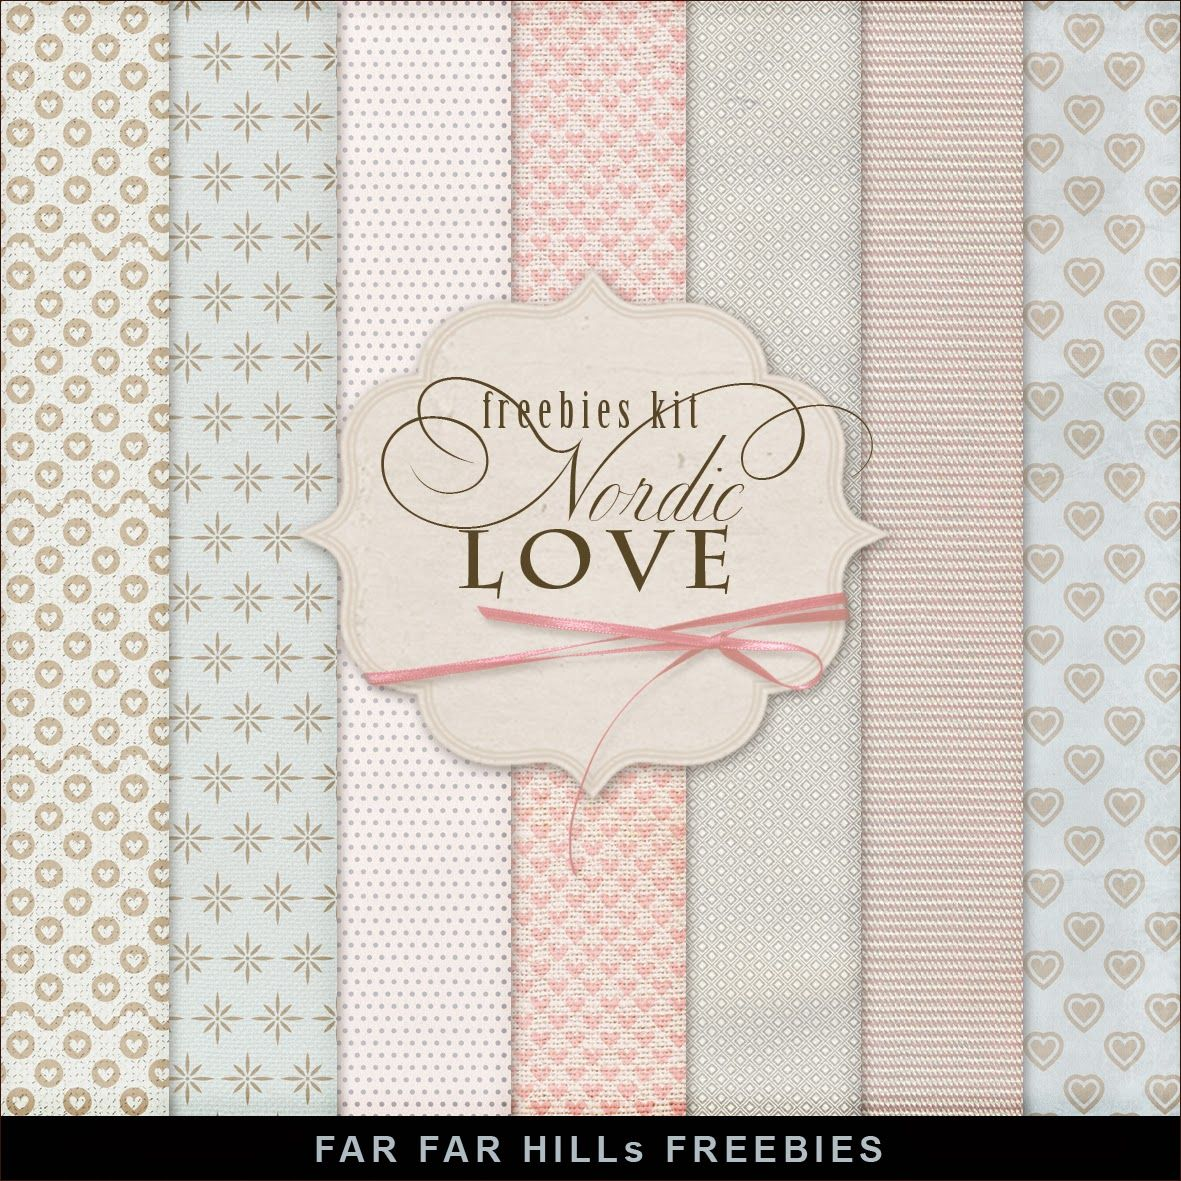 New Freebies Kit of Backgrounds - Nordic Love | cards | Pinterest ...